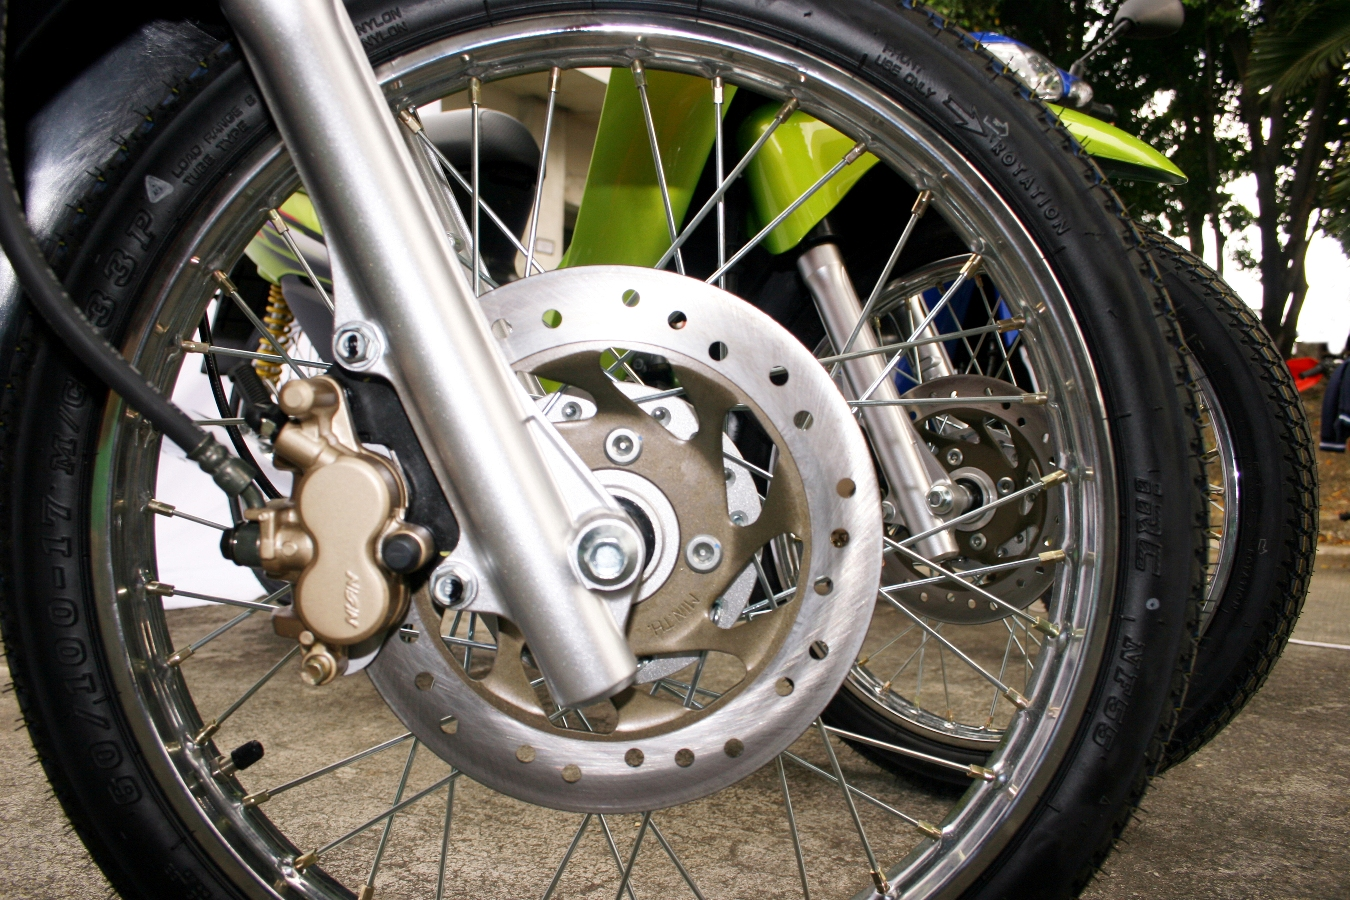 File photo of a motorcycle wheel. PHOTO: FILE